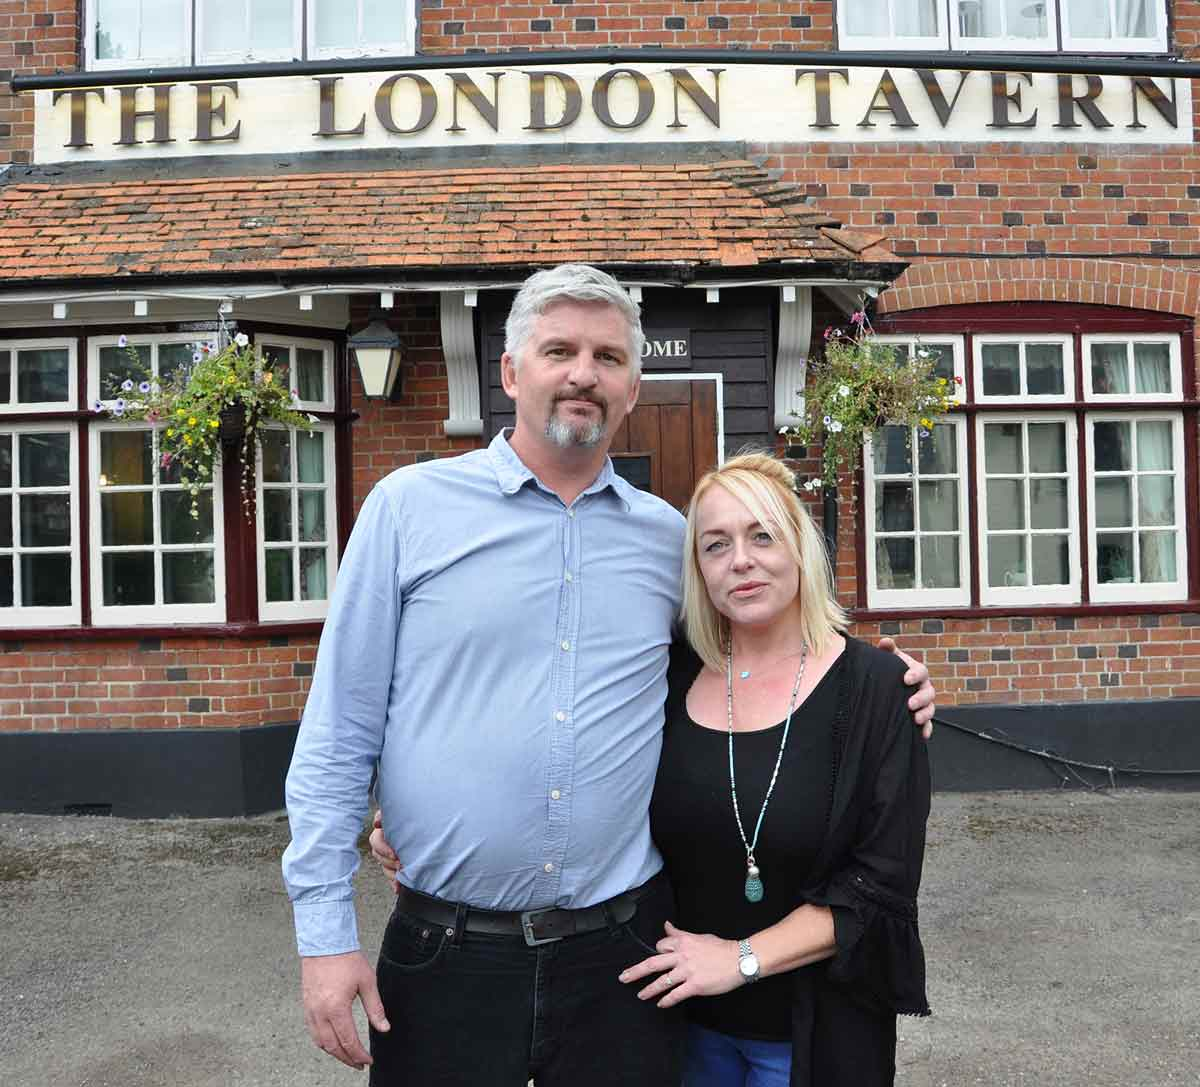 Phil and Sarah, new owners of the London Tavern in Poulner, Ringwood